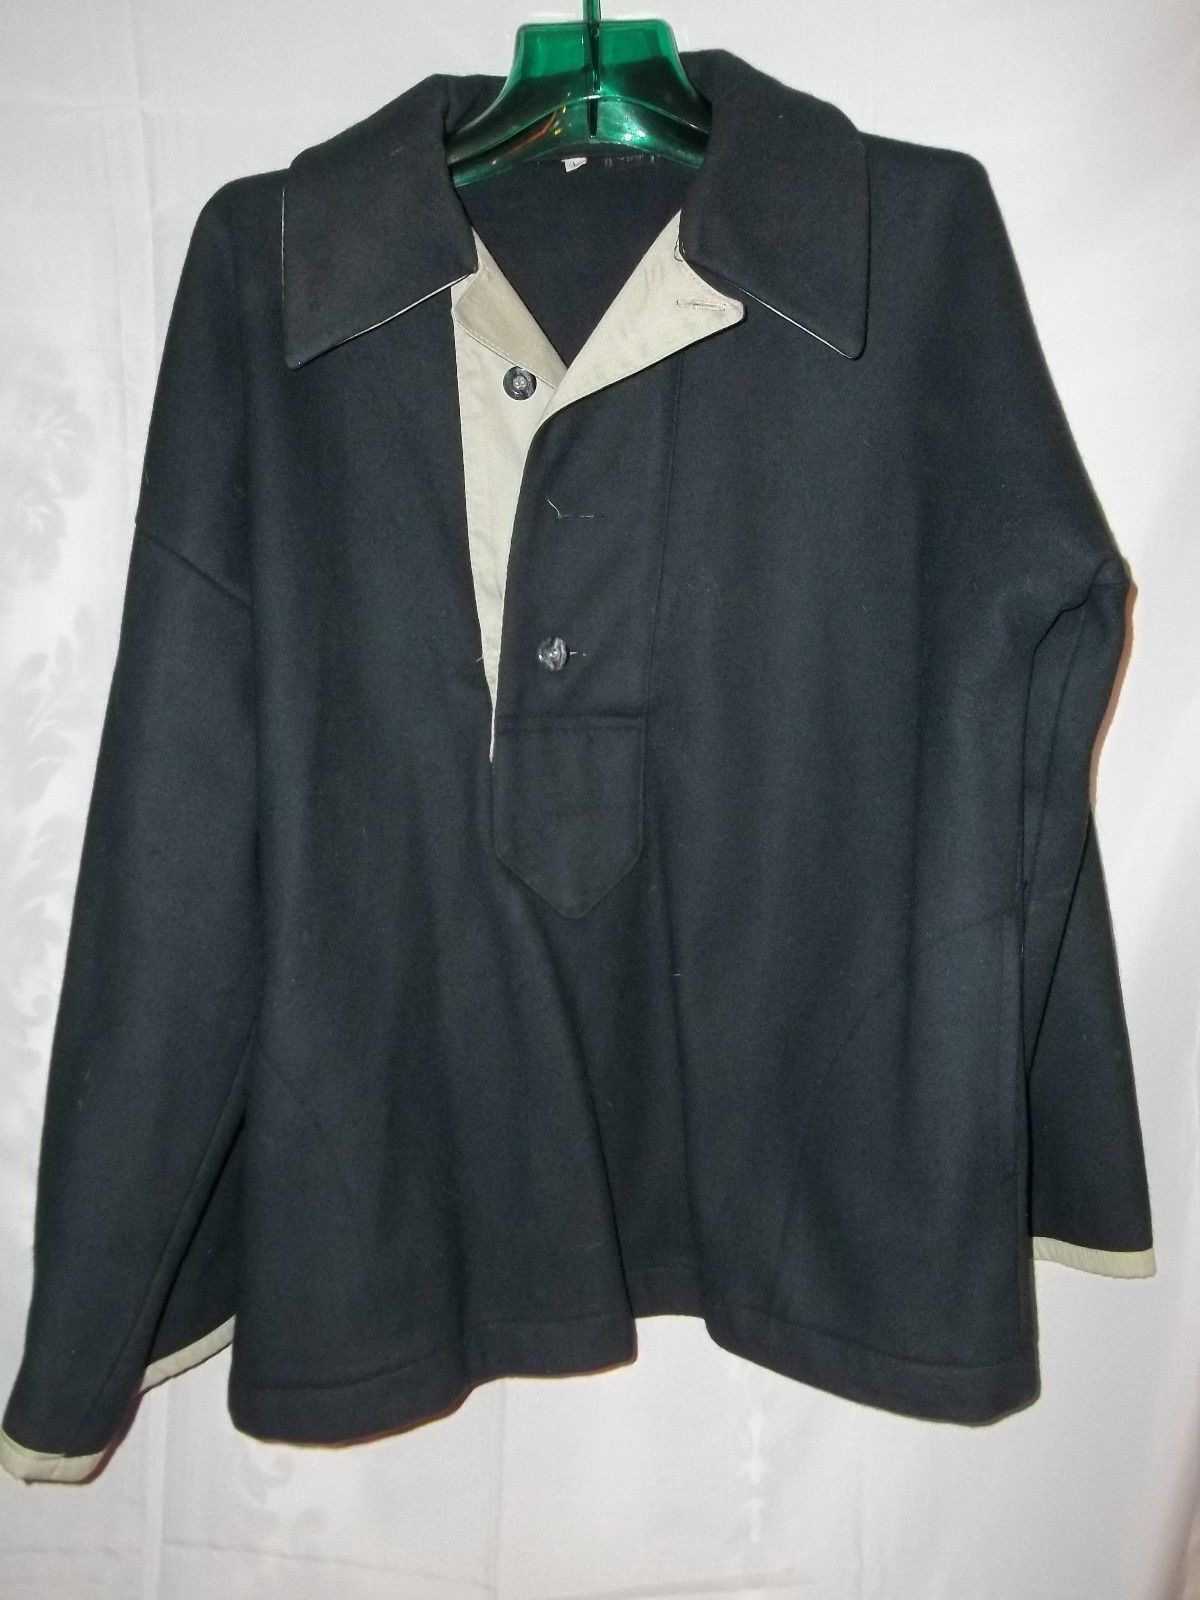 Size L oggi Navy Blue Wool Pullover Vintage Jacket Khaki Trim 3 Buttons Collared